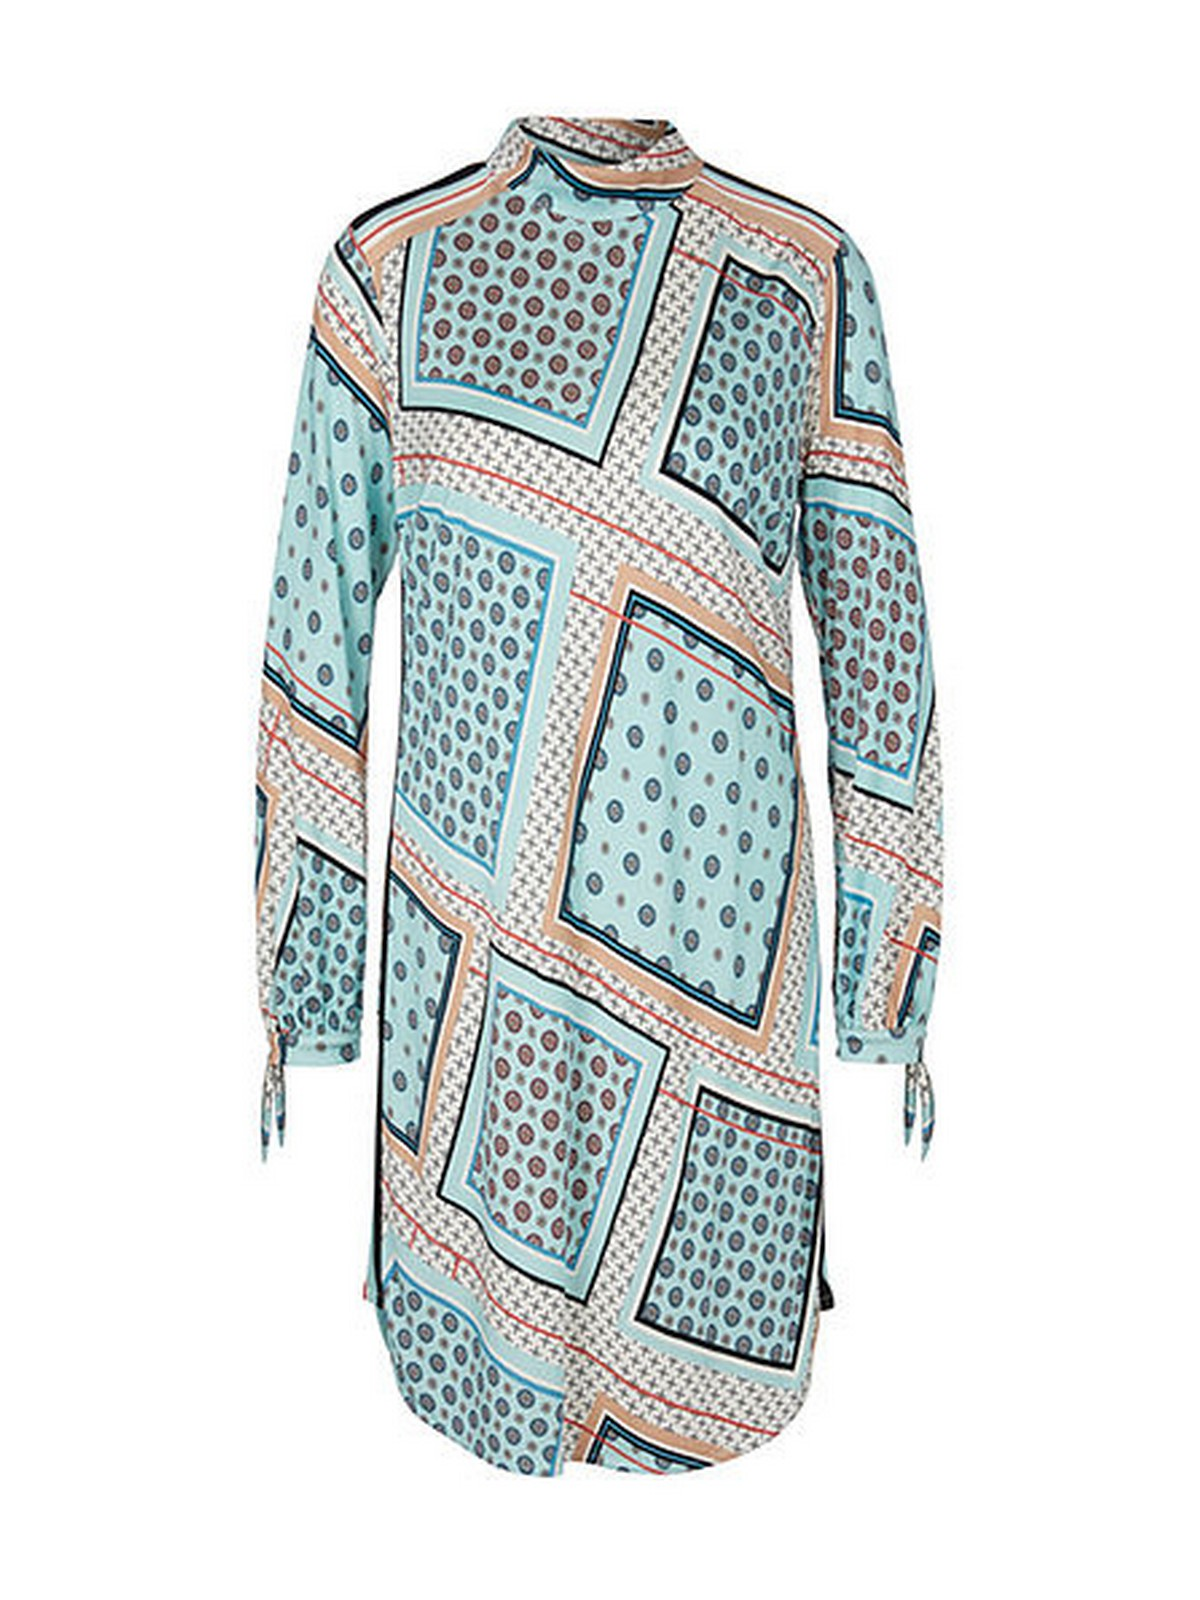 Marc Cain - Kleed aqua print - PC 21.50 J37